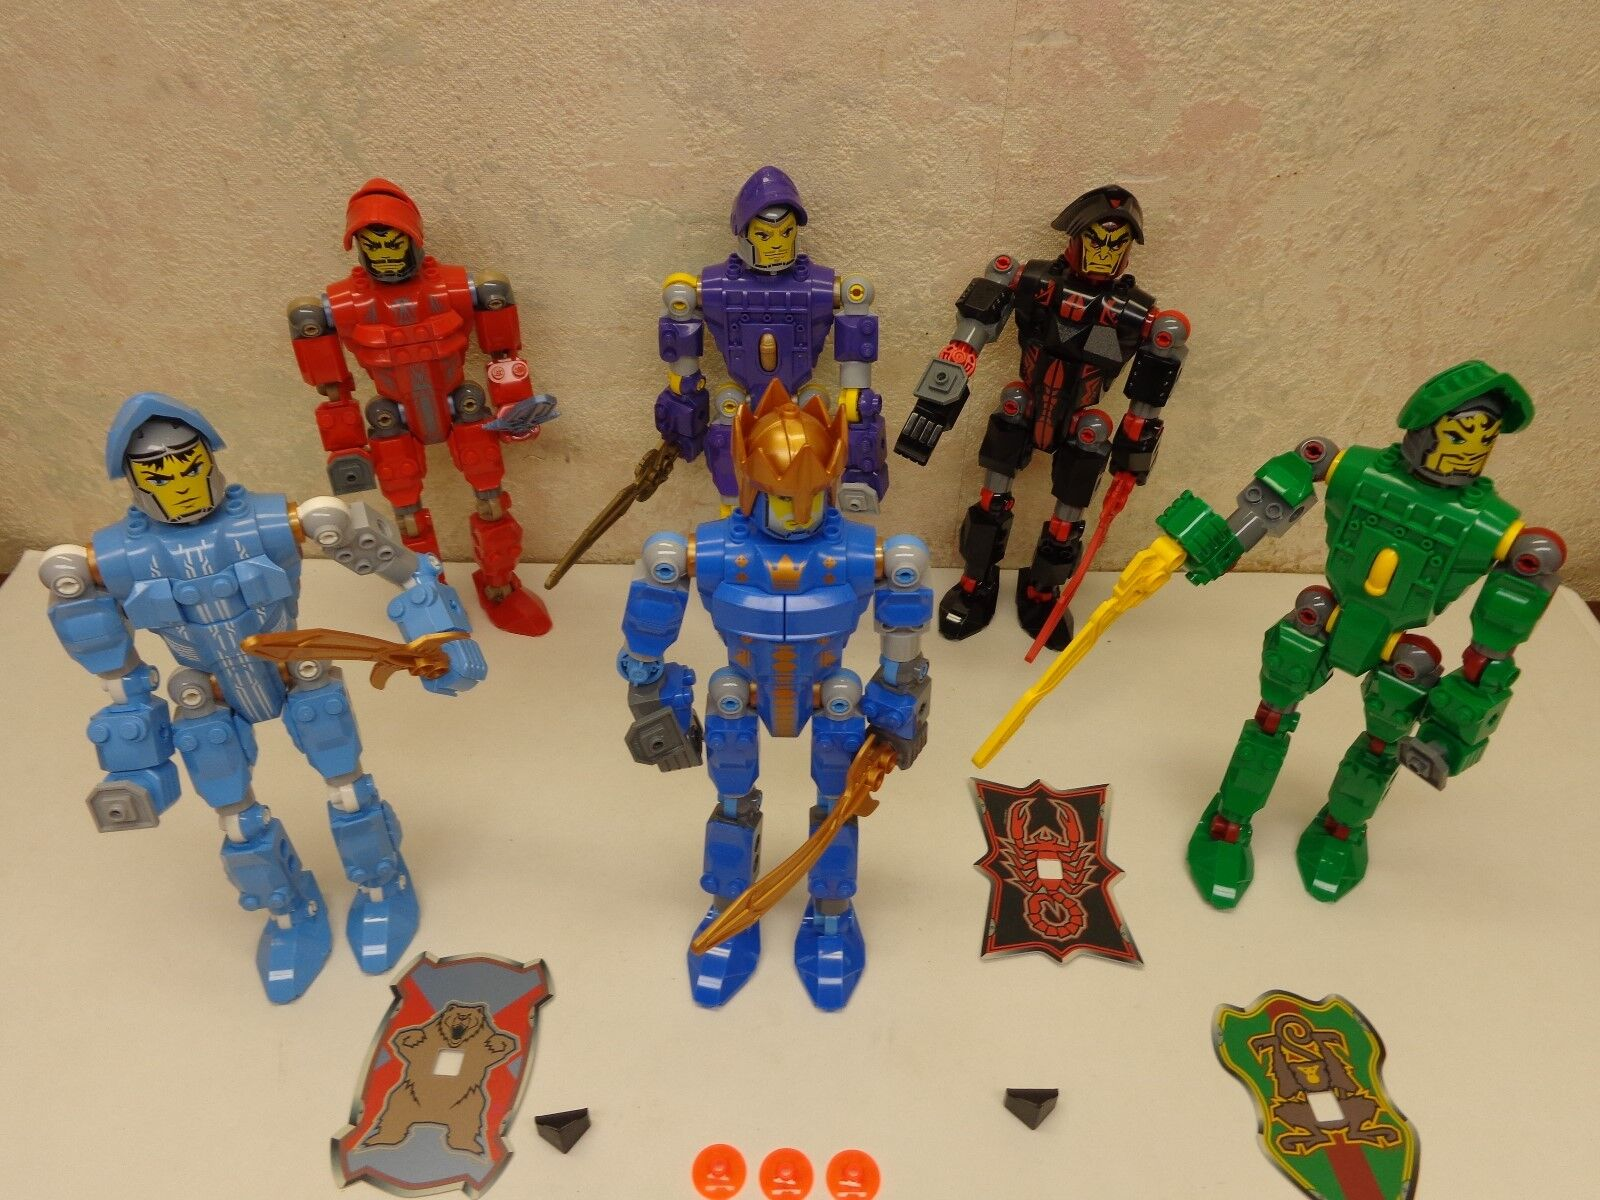 LEGO Lego Knights Kingdom Action Figures Robots Lot of 6  8  Tall